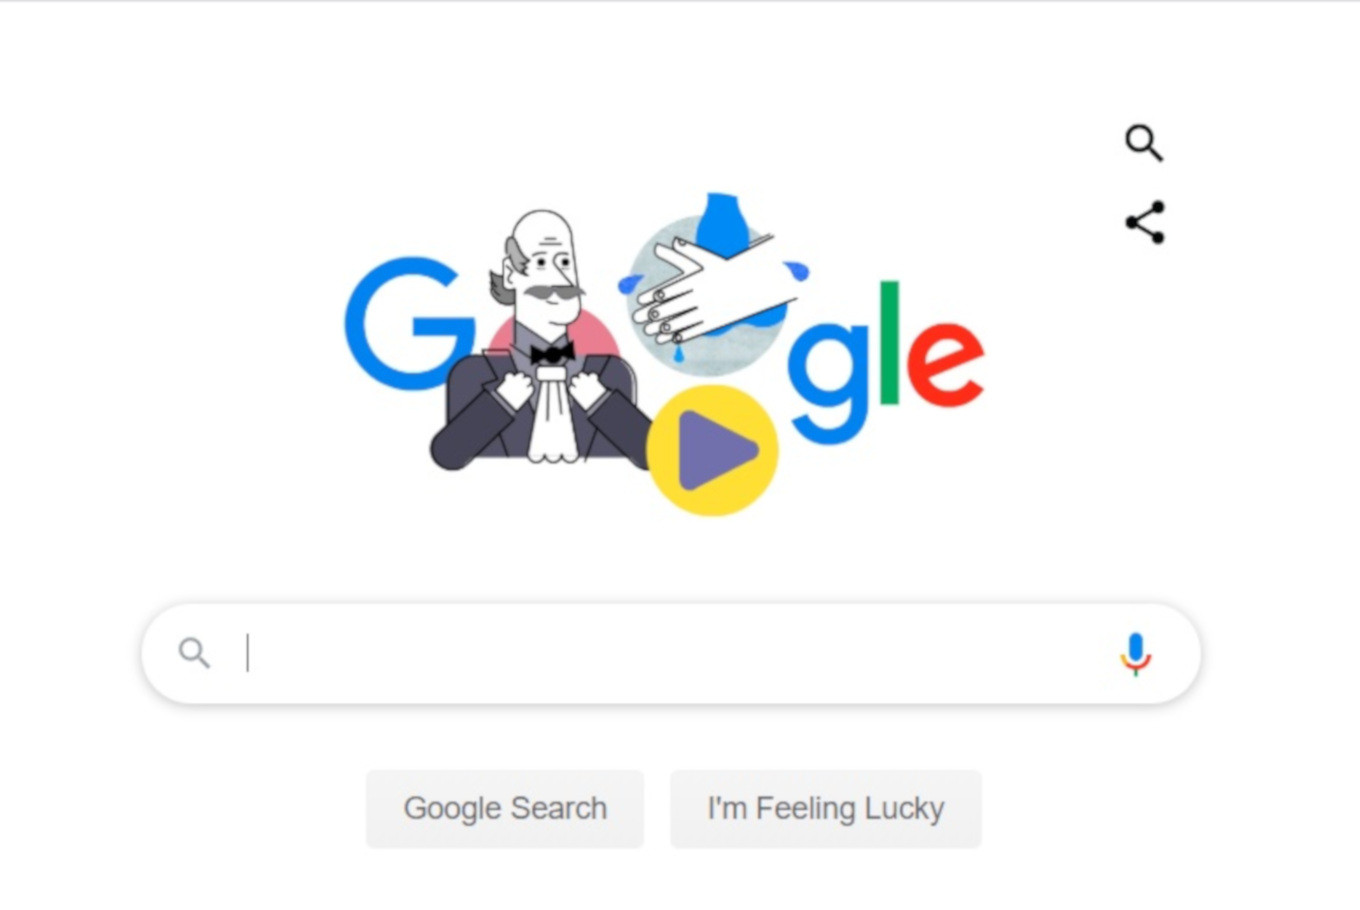 Google Doodle spreads handwashing, recognizes 'father of infection control'